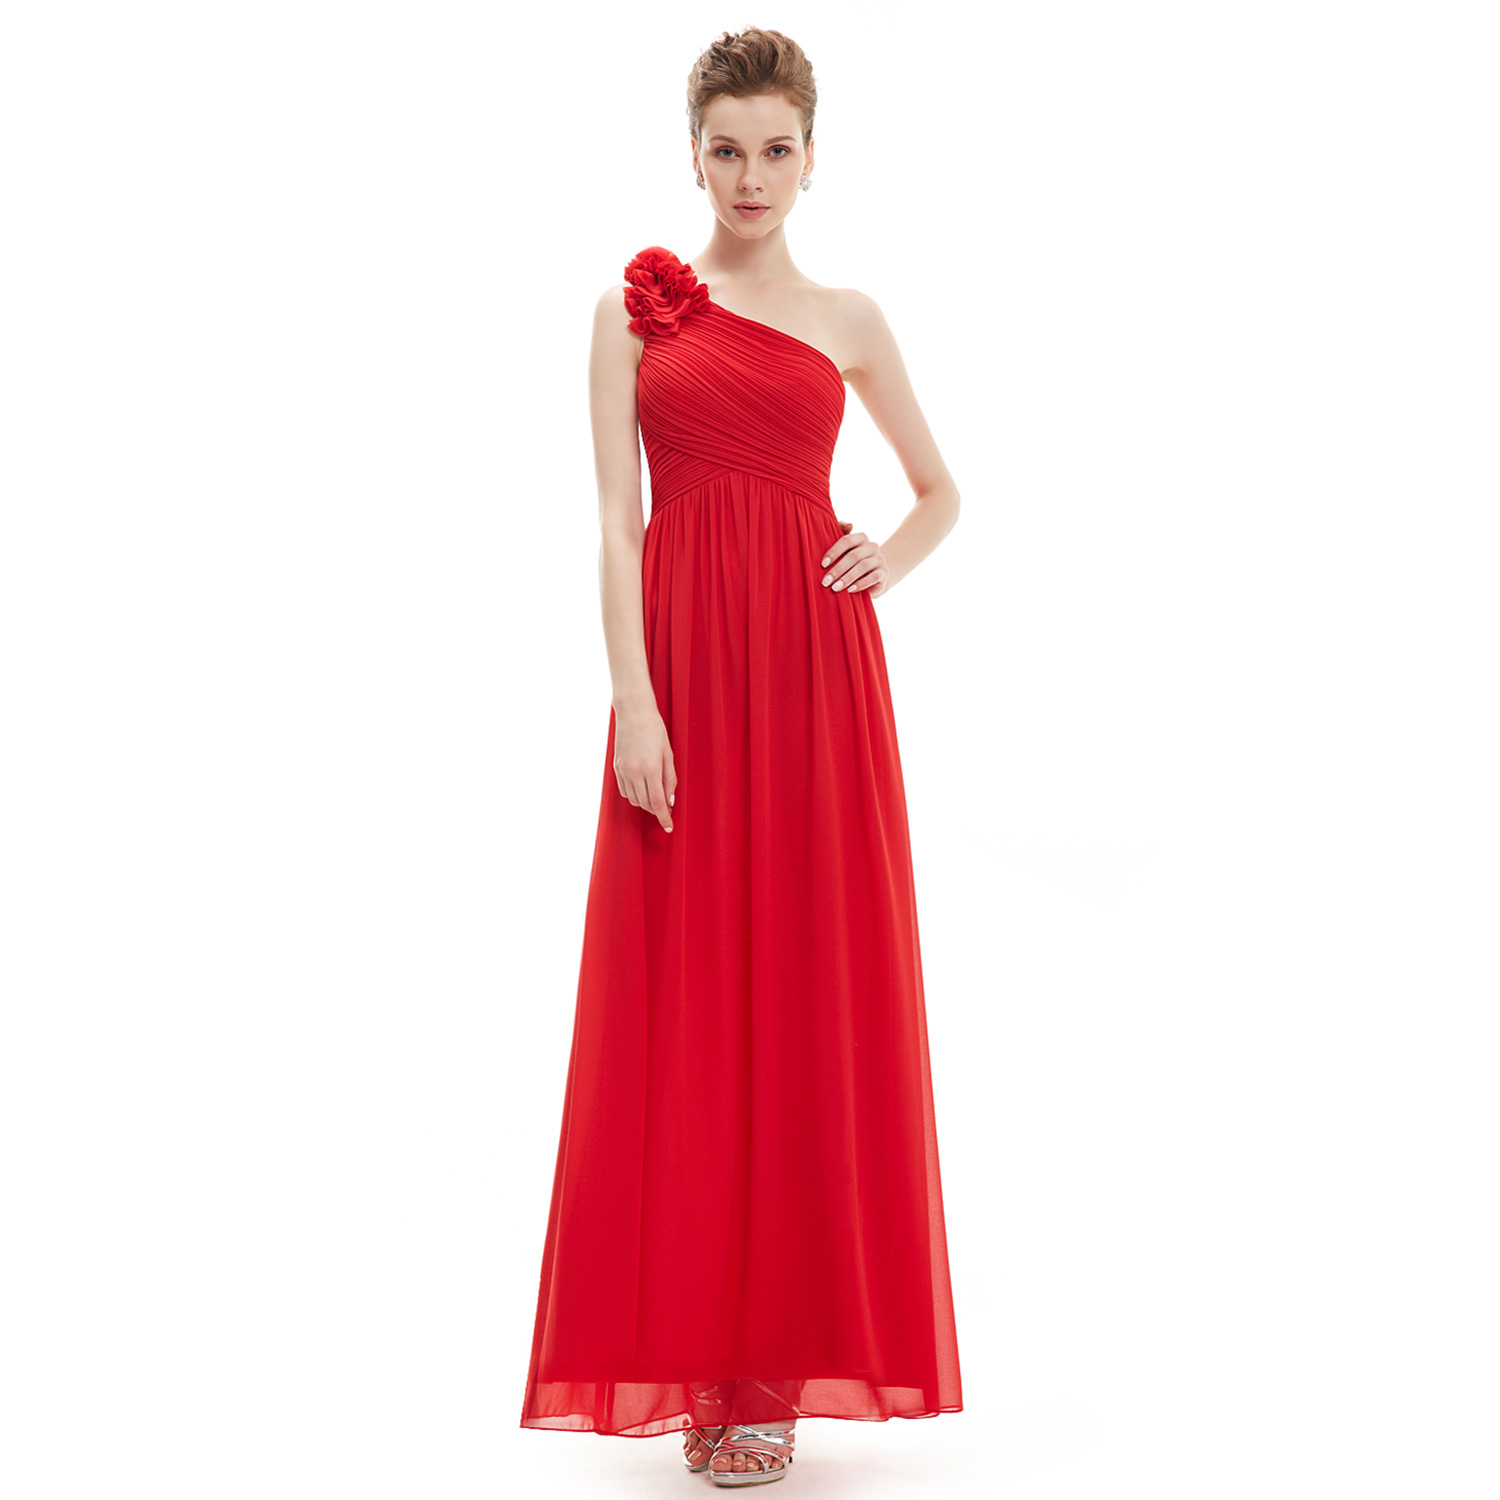 Long One Shoulder Prom Gown Bridesmaid Cocktail